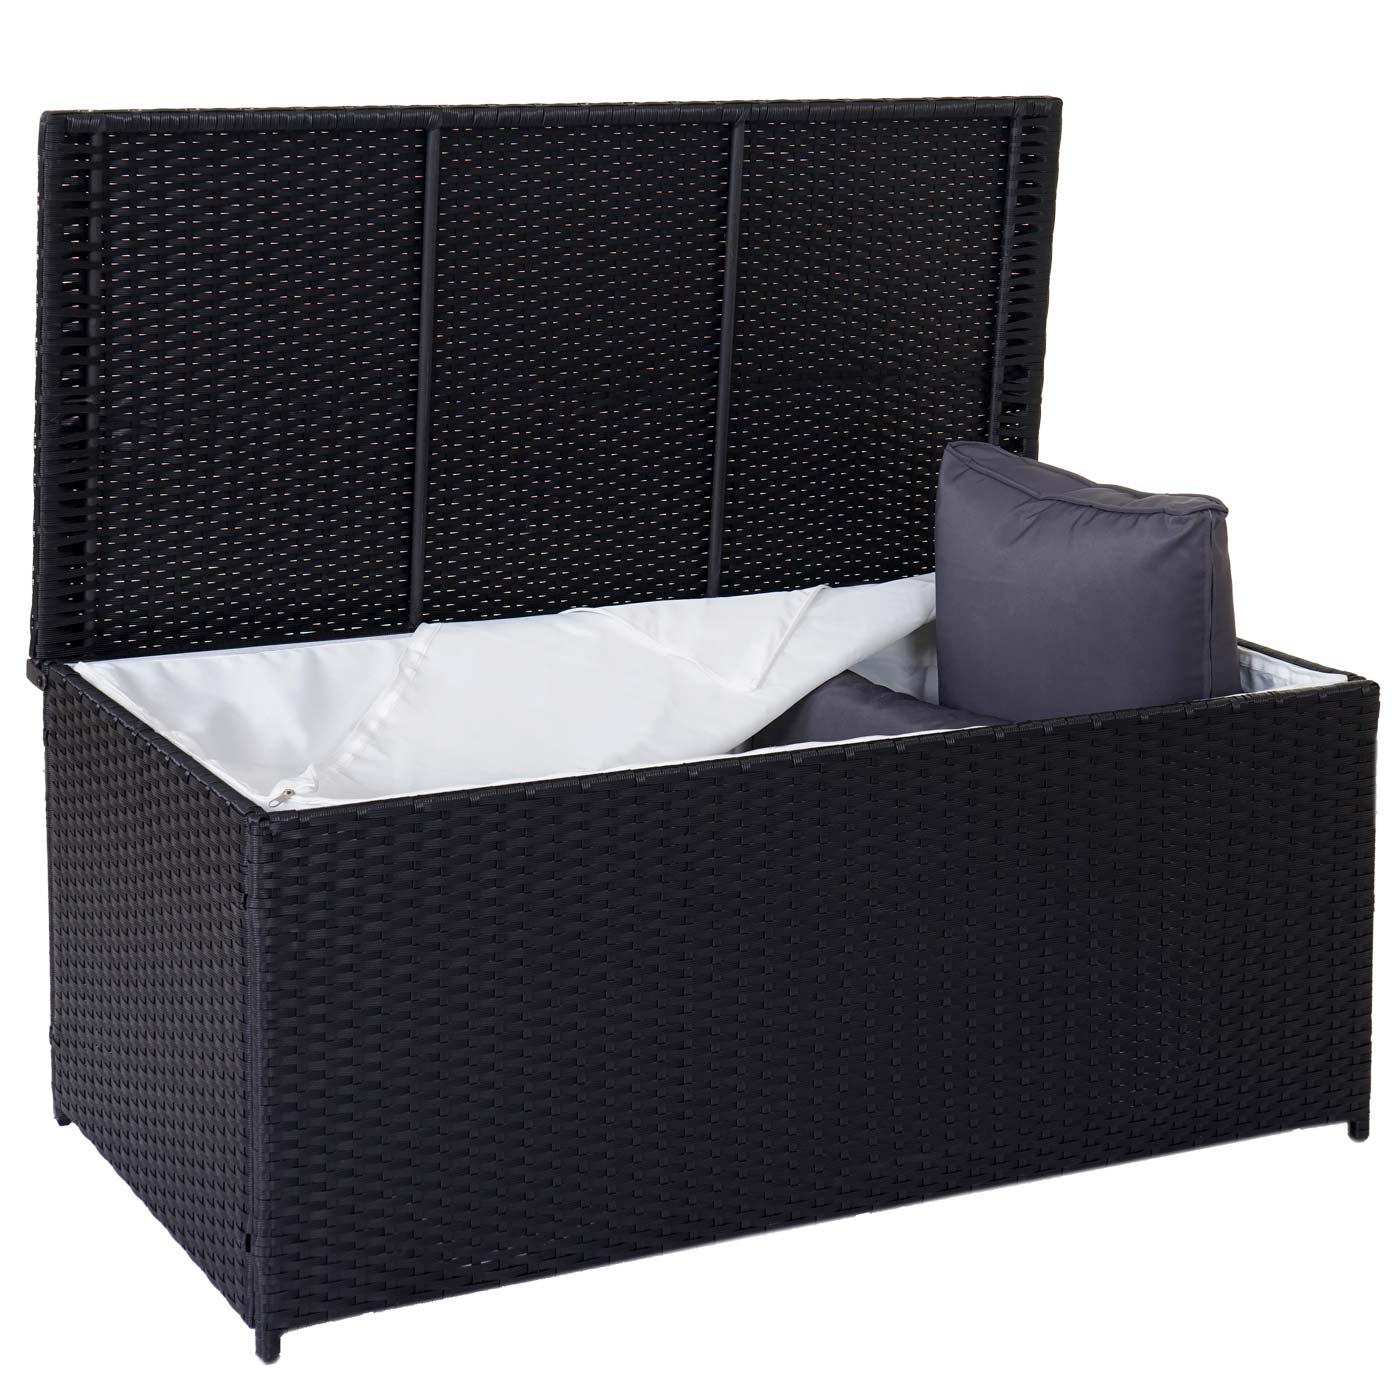 poly rattan kissenbox barry truhe auflagenbox gartenbox. Black Bedroom Furniture Sets. Home Design Ideas